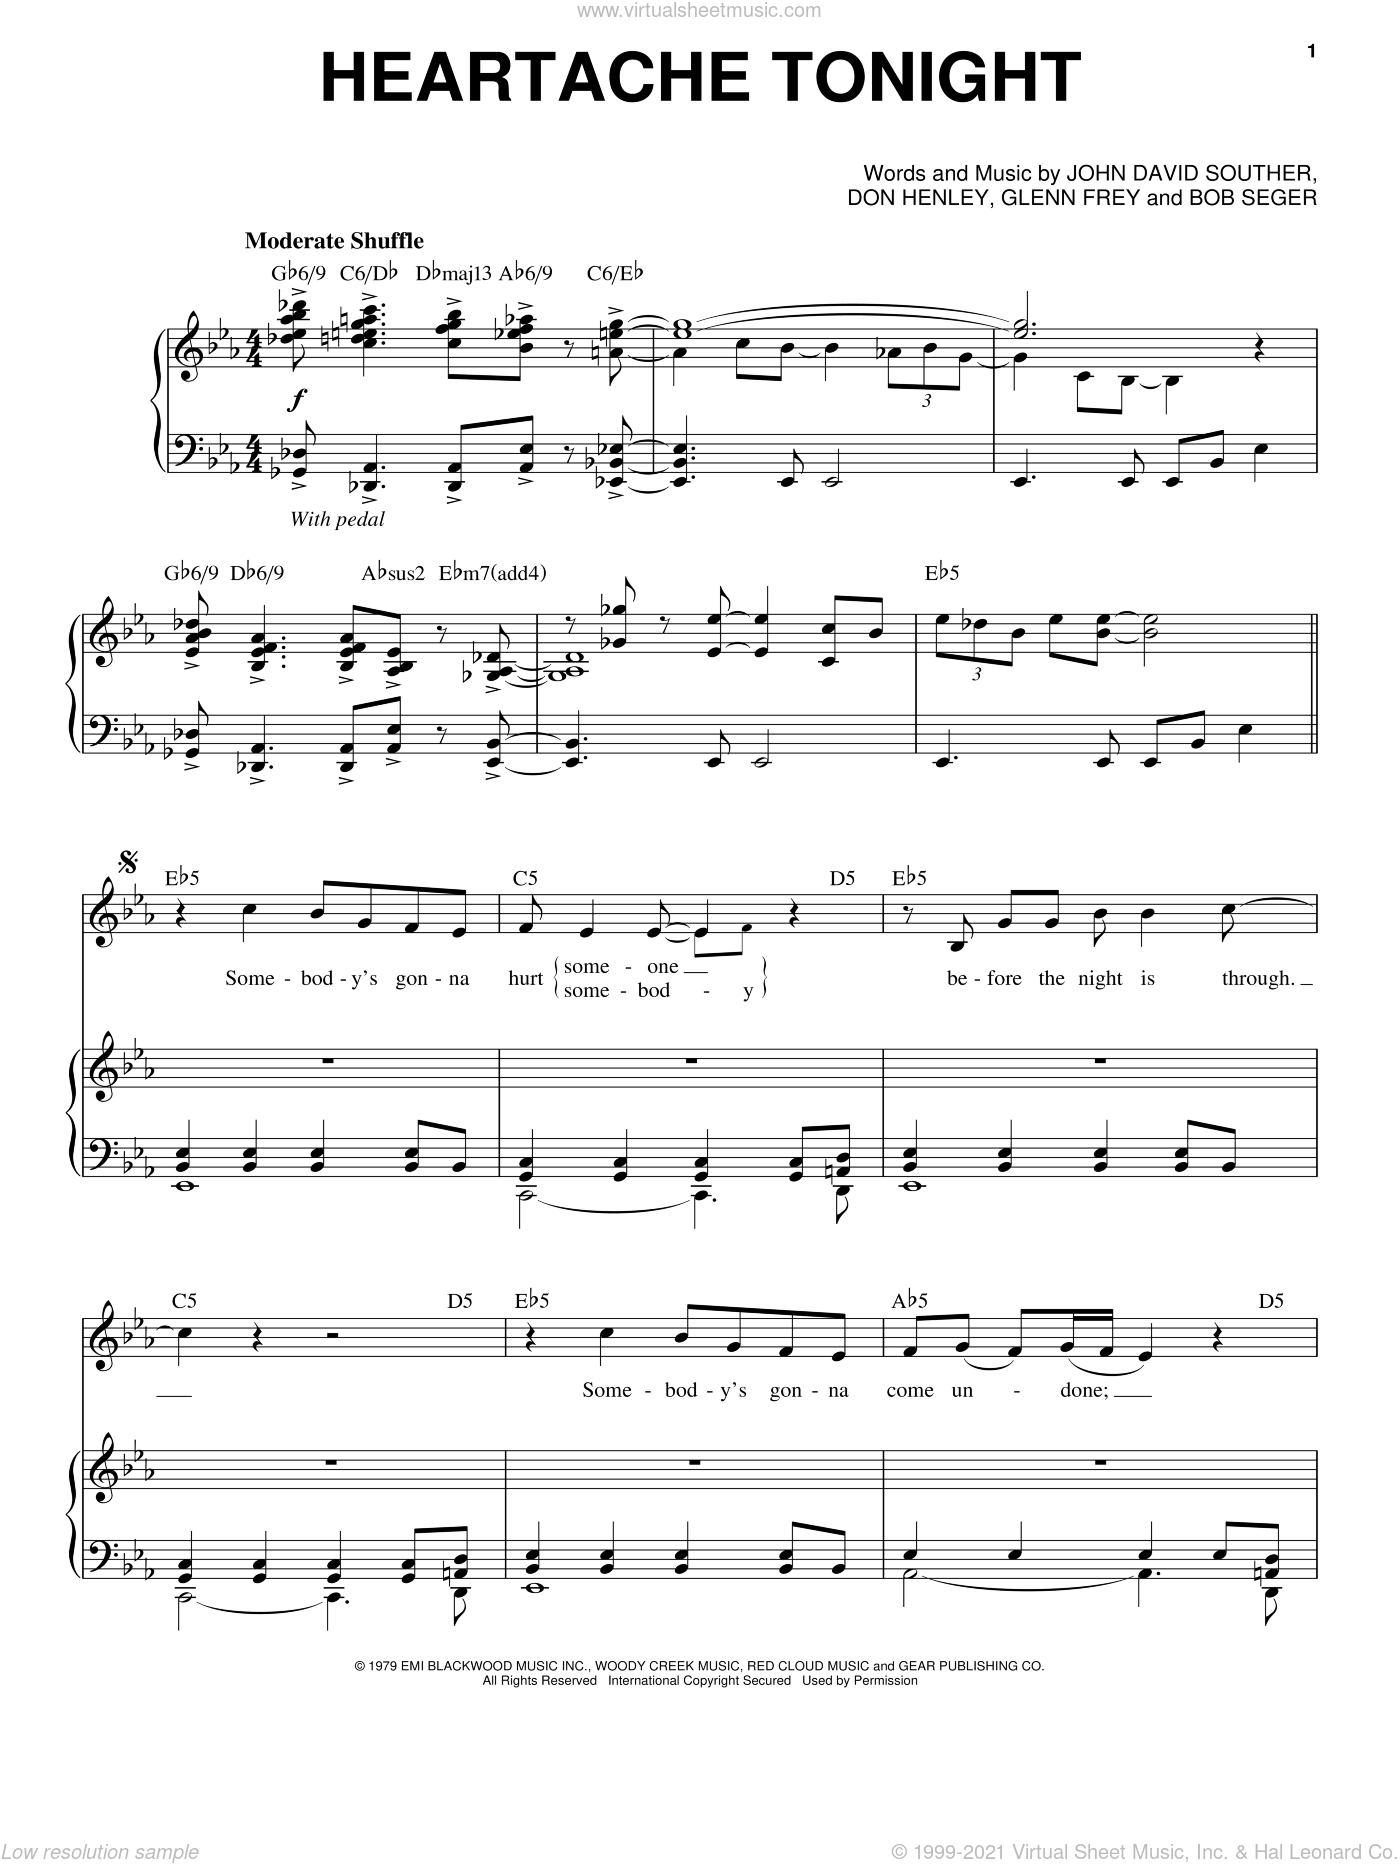 Heartache Tonight sheet music for voice and piano by John David Souther, Eagles, Michael Buble, Bob Seger, Don Henley and Glenn Frey. Score Image Preview.